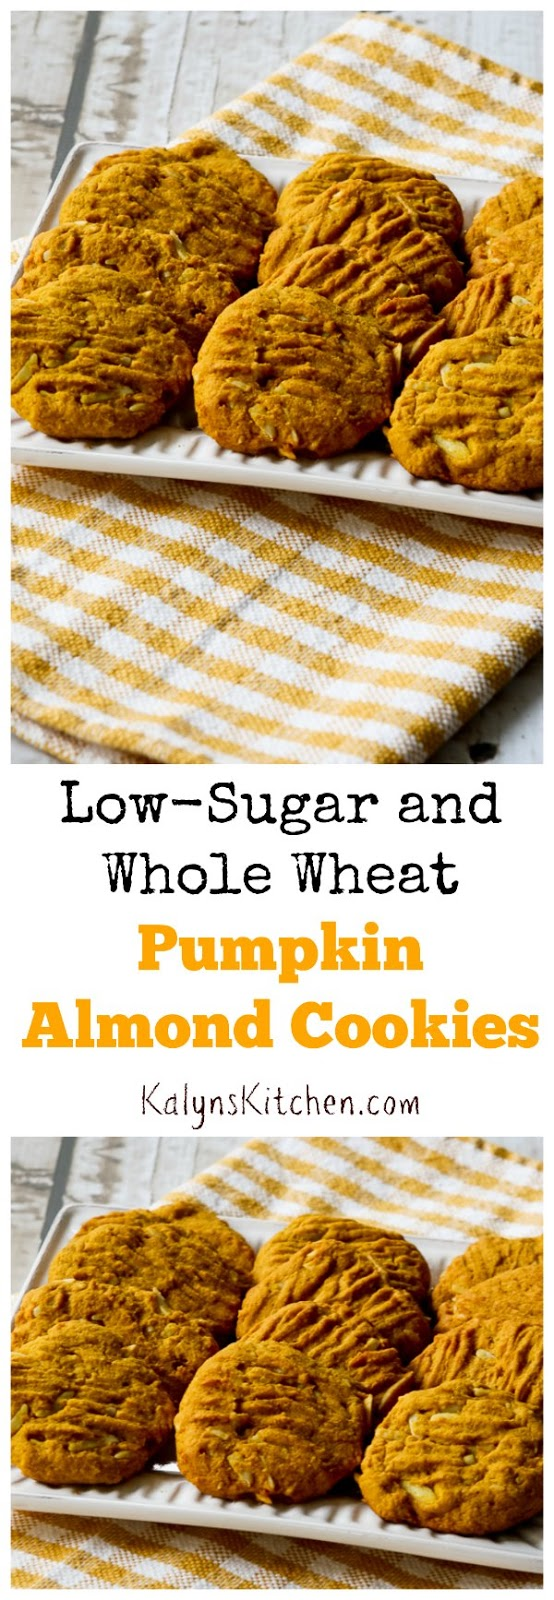 Kalyn's Kitchen®: Low-Sugar and Whole Wheat Pumpkin Almond ...